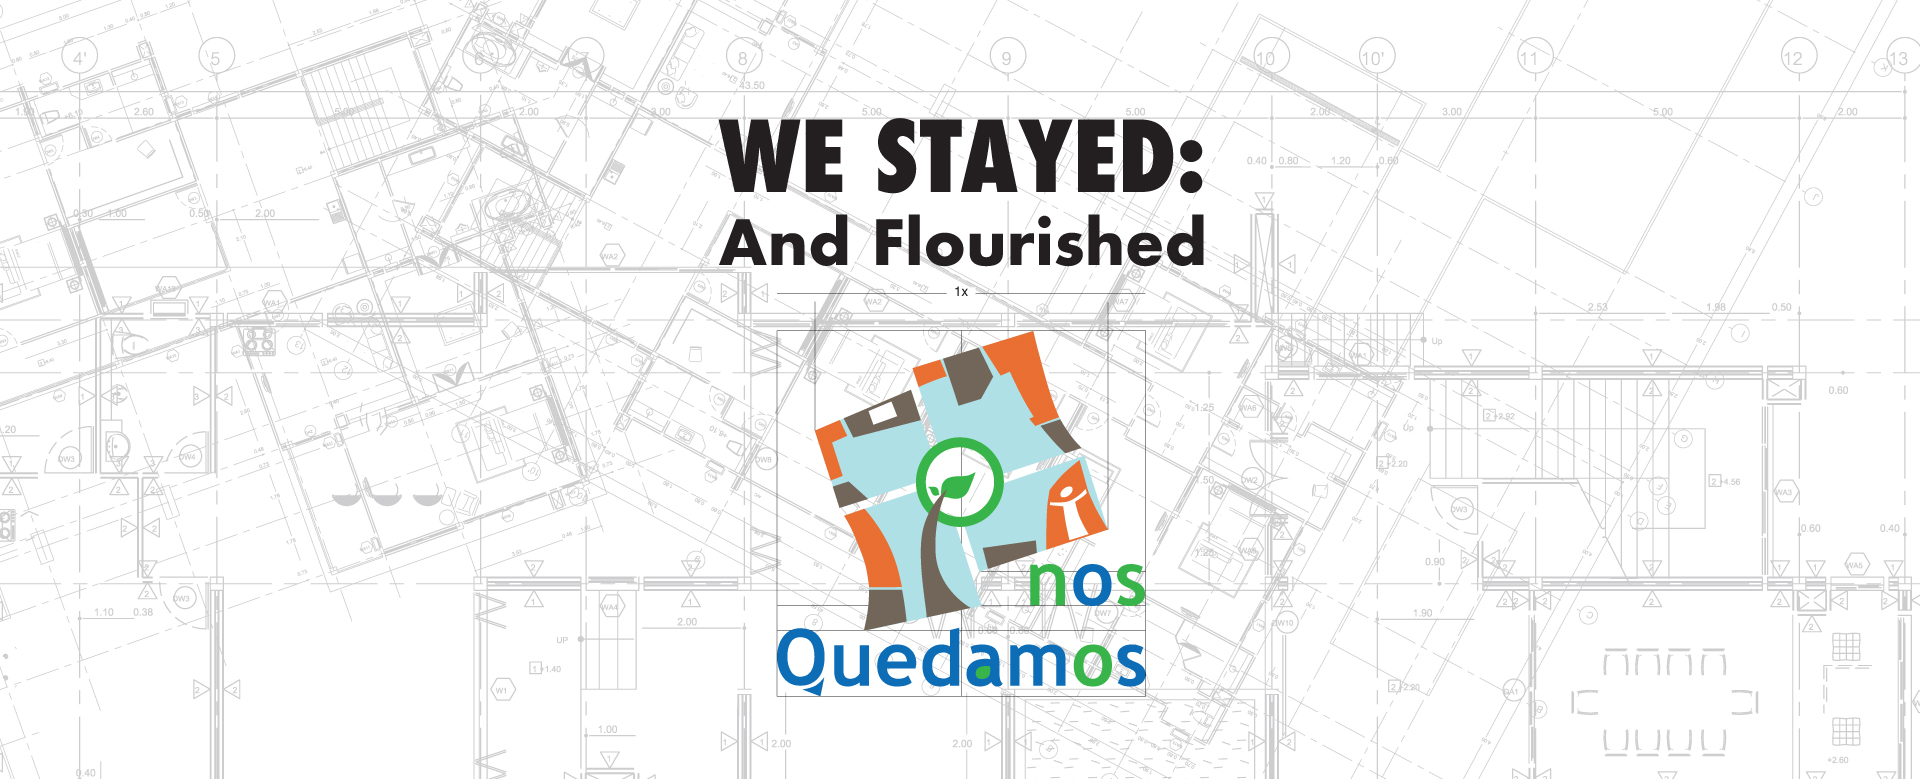 WE STAYED: And Flourished.